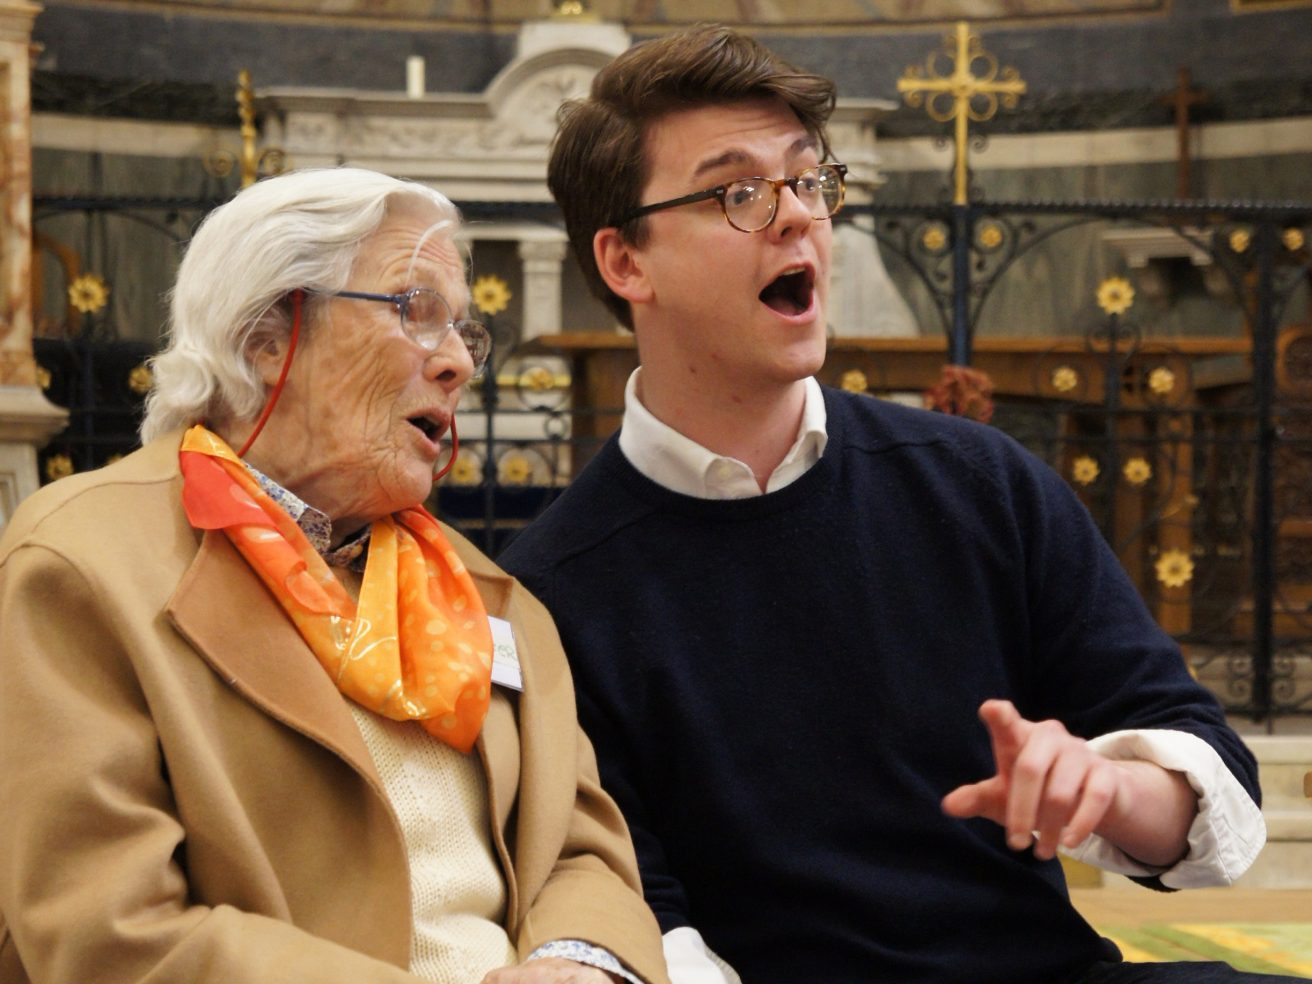 Two people singing together in a church